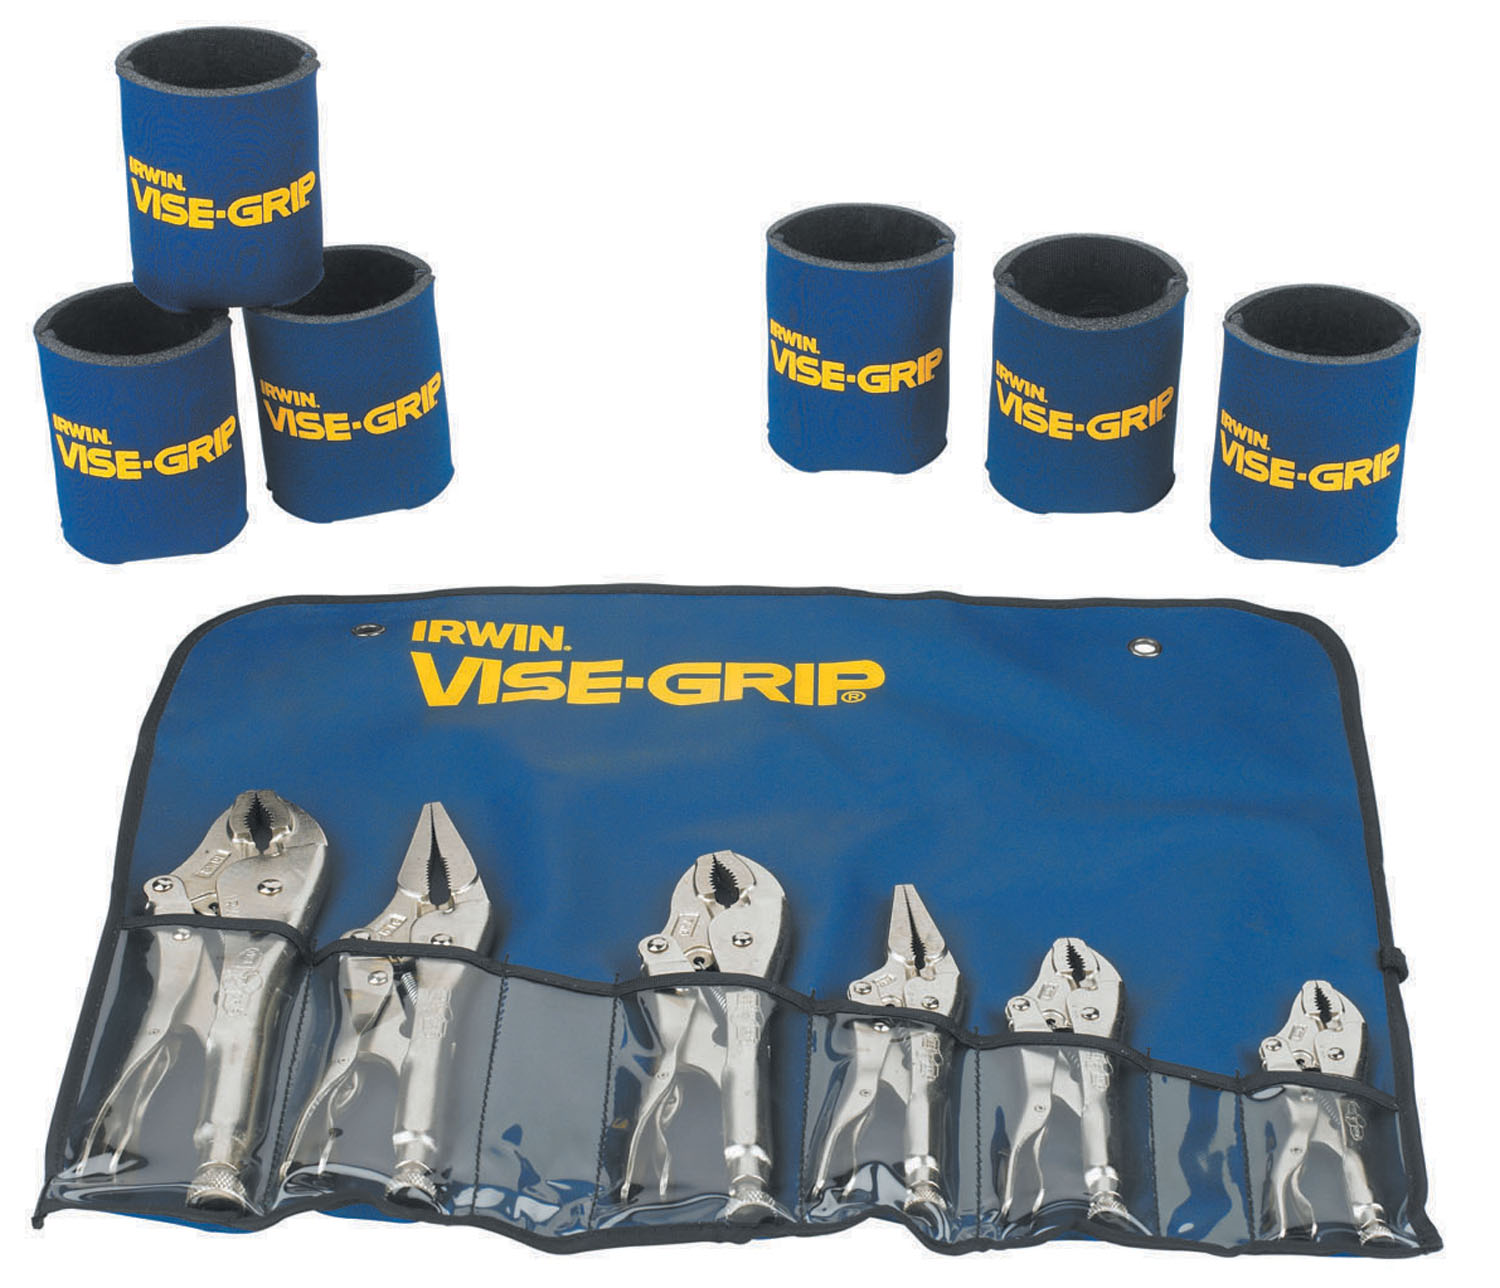 Vise Grip 6 Piece Tool Set in Bag with 6 Koozie Cups VSG-641KB